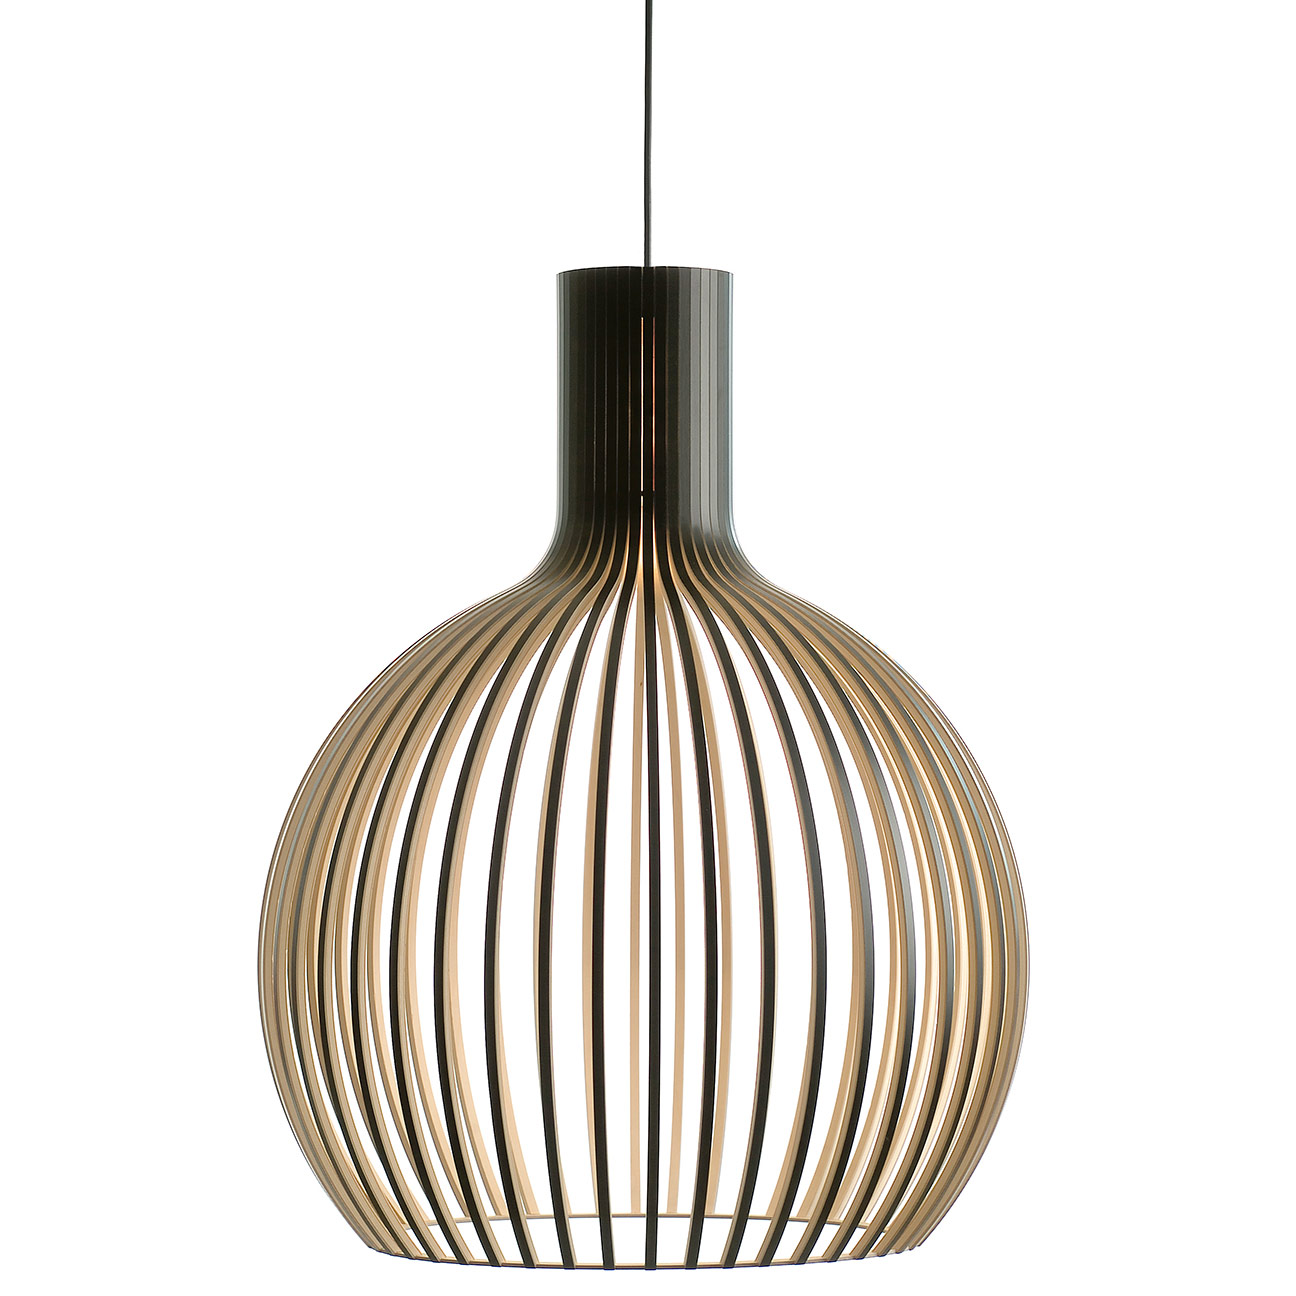 Octo 424 Pendant By Secto Design 4240bk8fte26